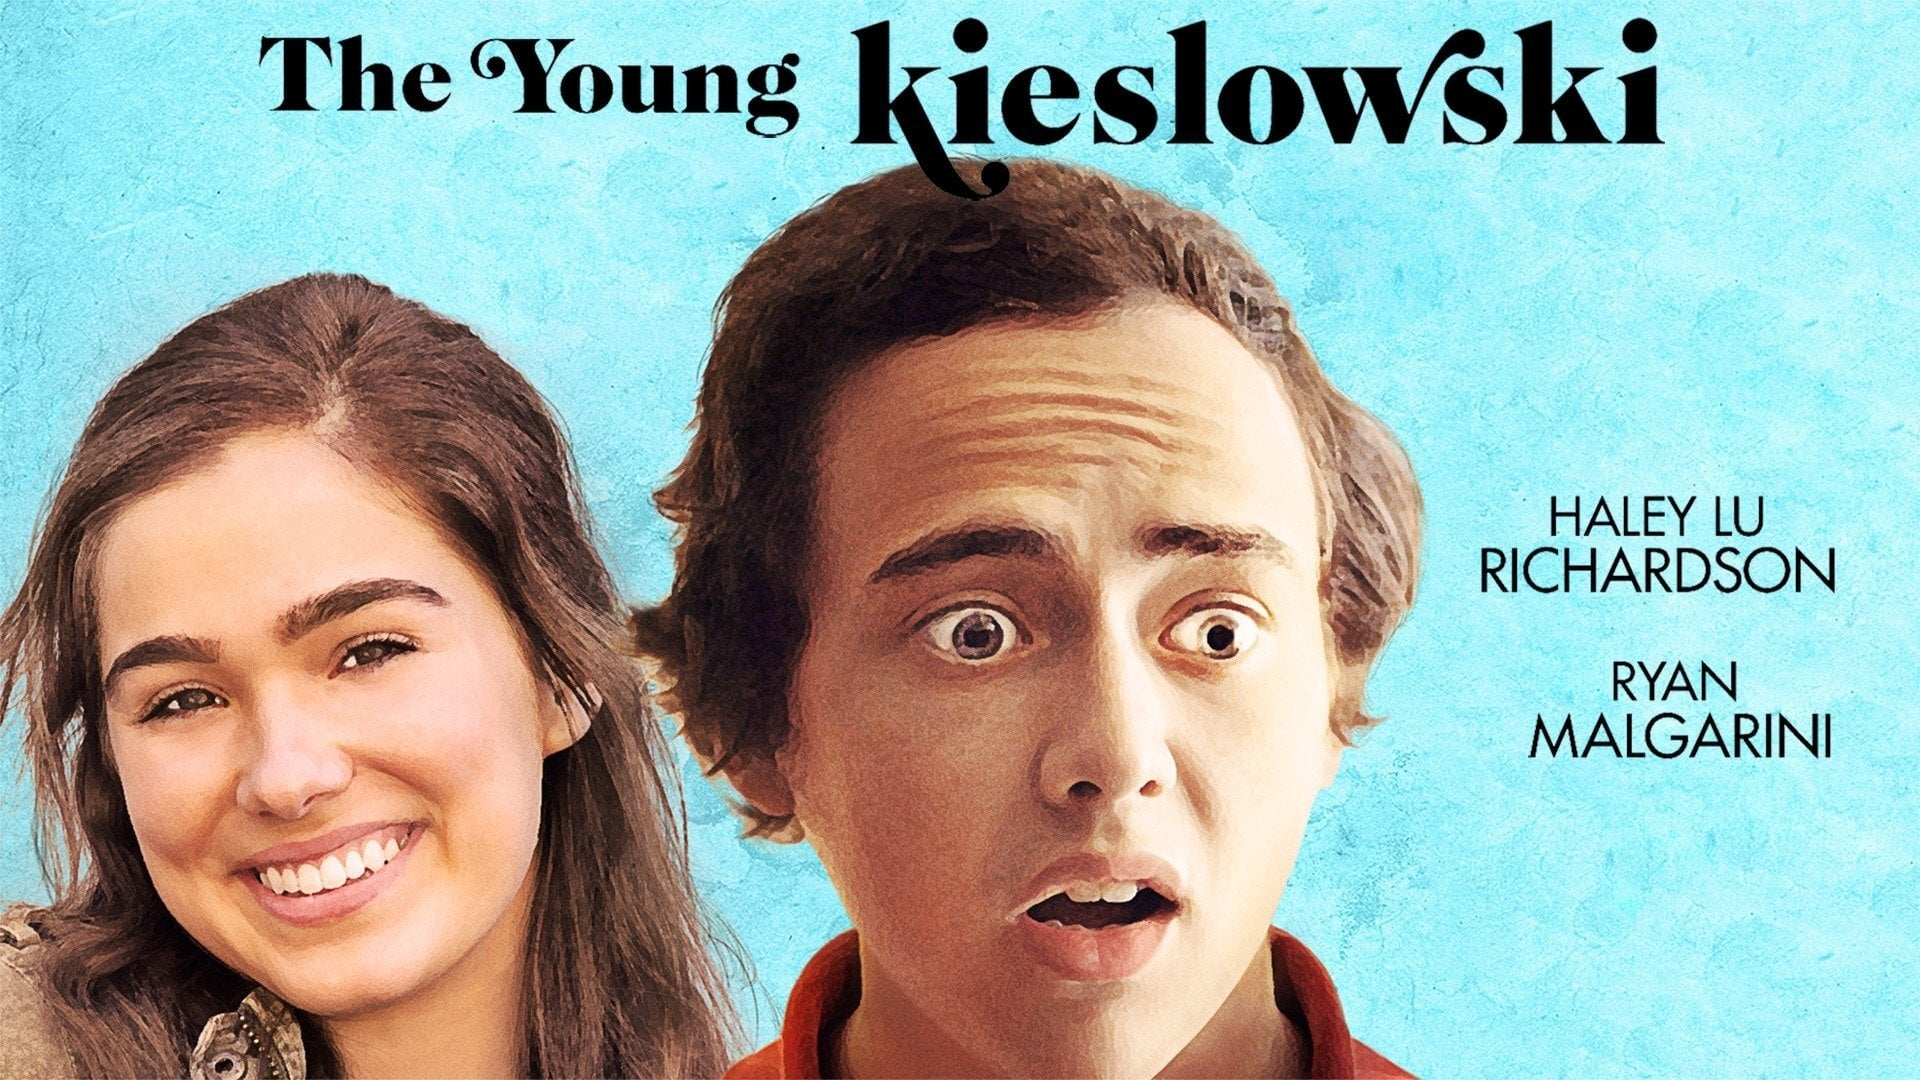 The Young Kieslowski (2014)